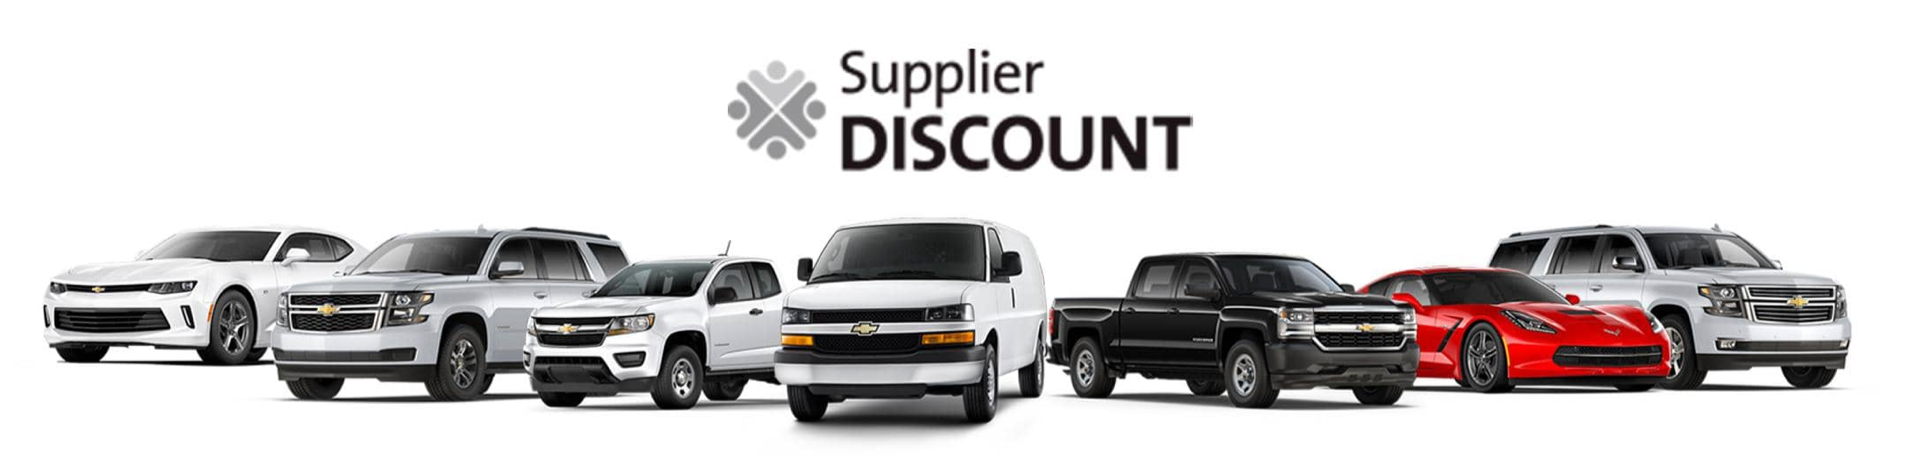 Supplier Discount